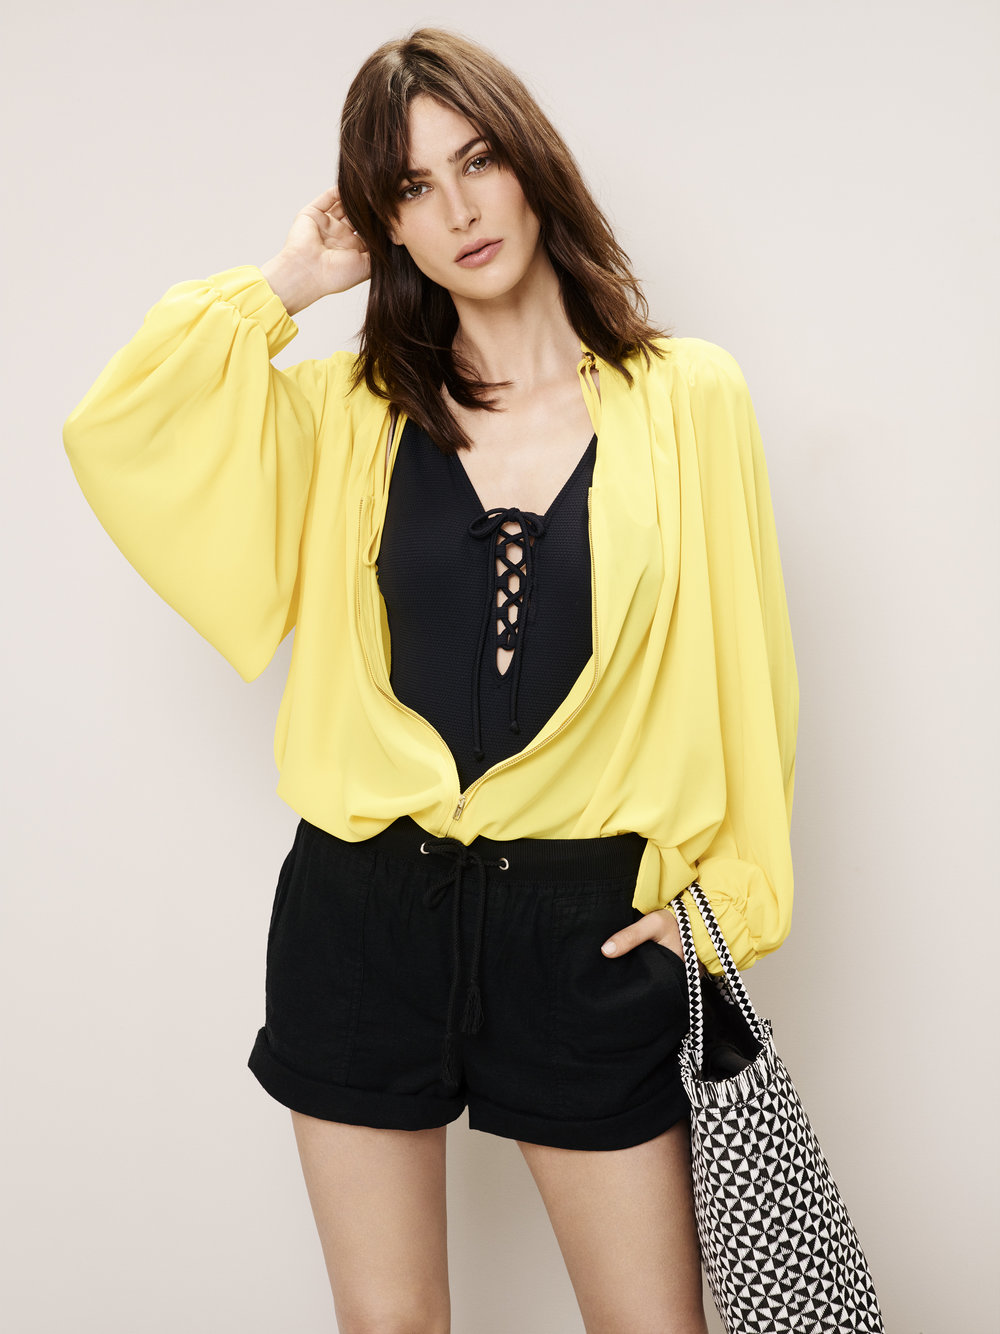 M&S High Summer Collection 17 (39).jpg